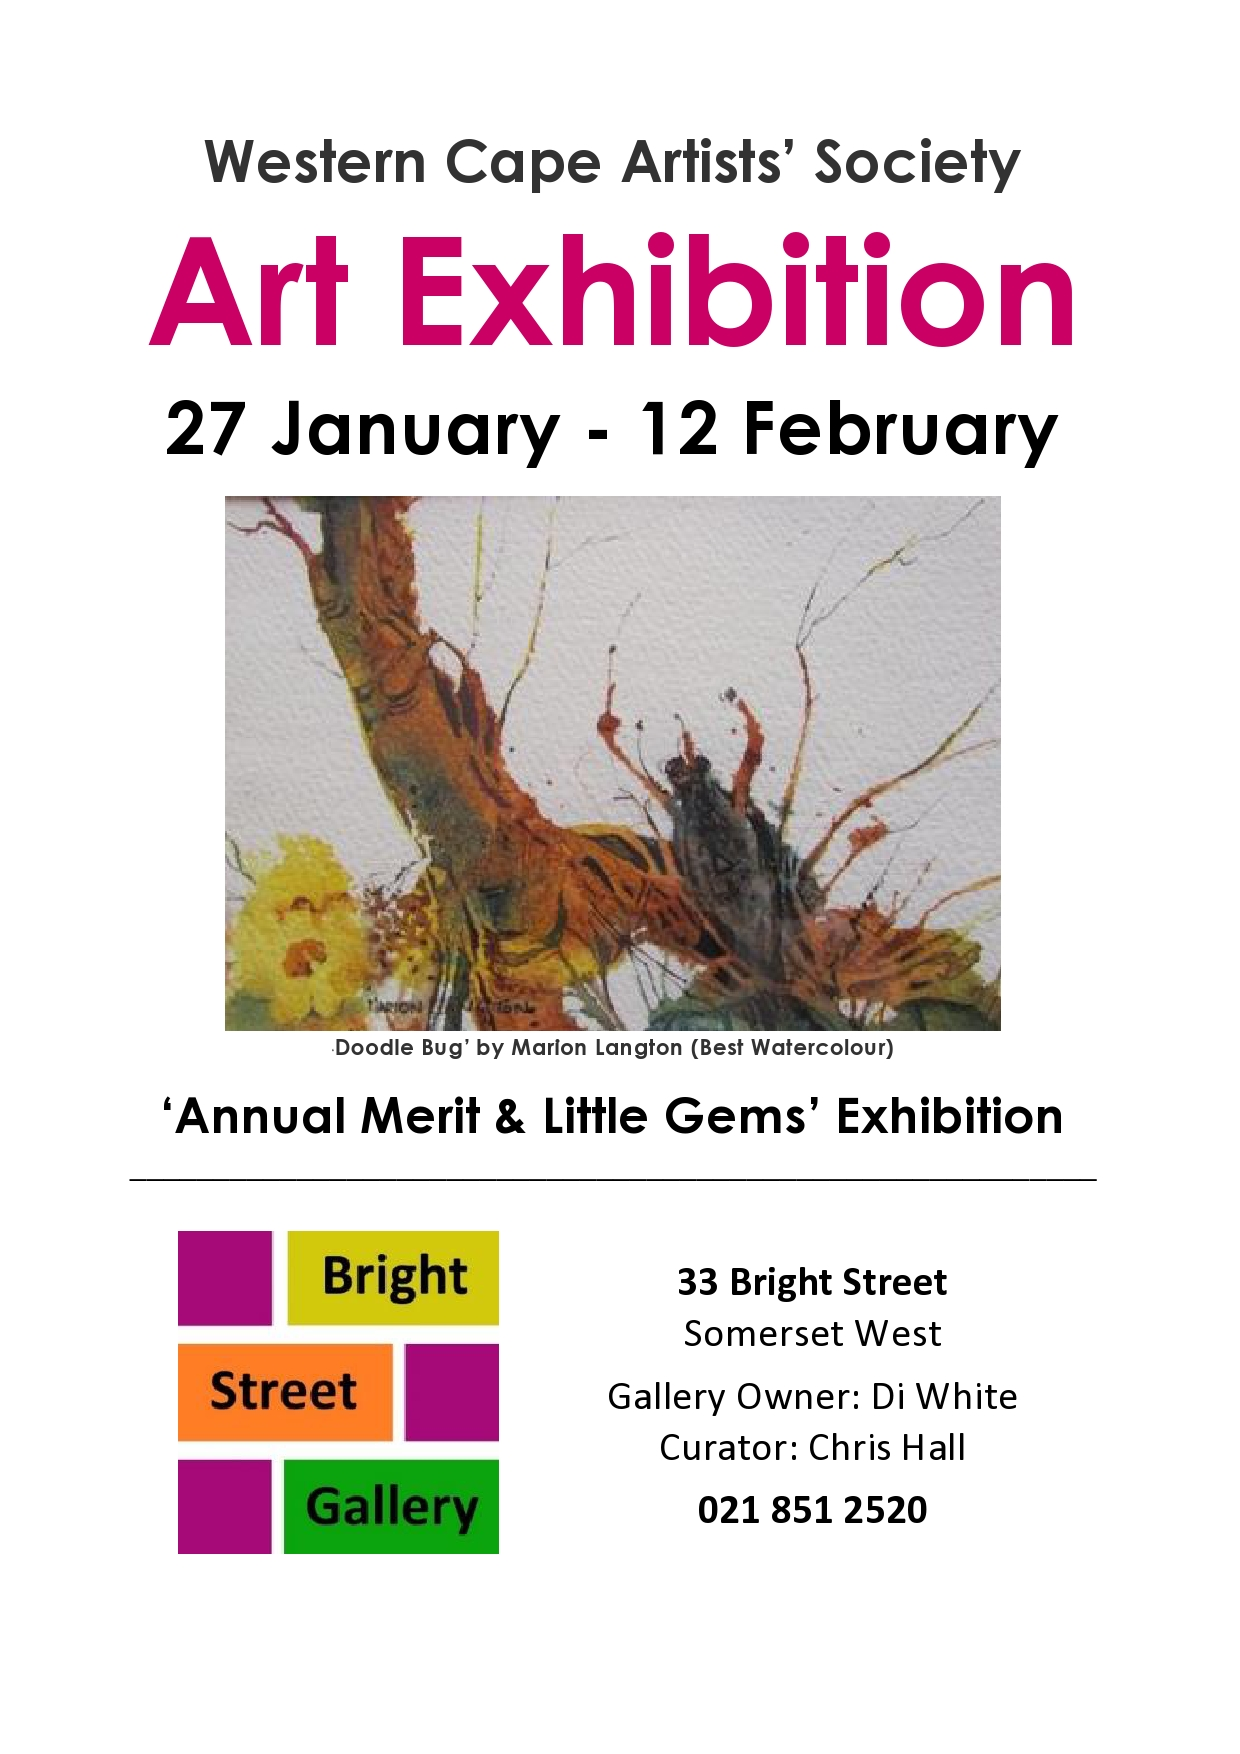 WCAS Art Exhibition - Bright Street Gallery